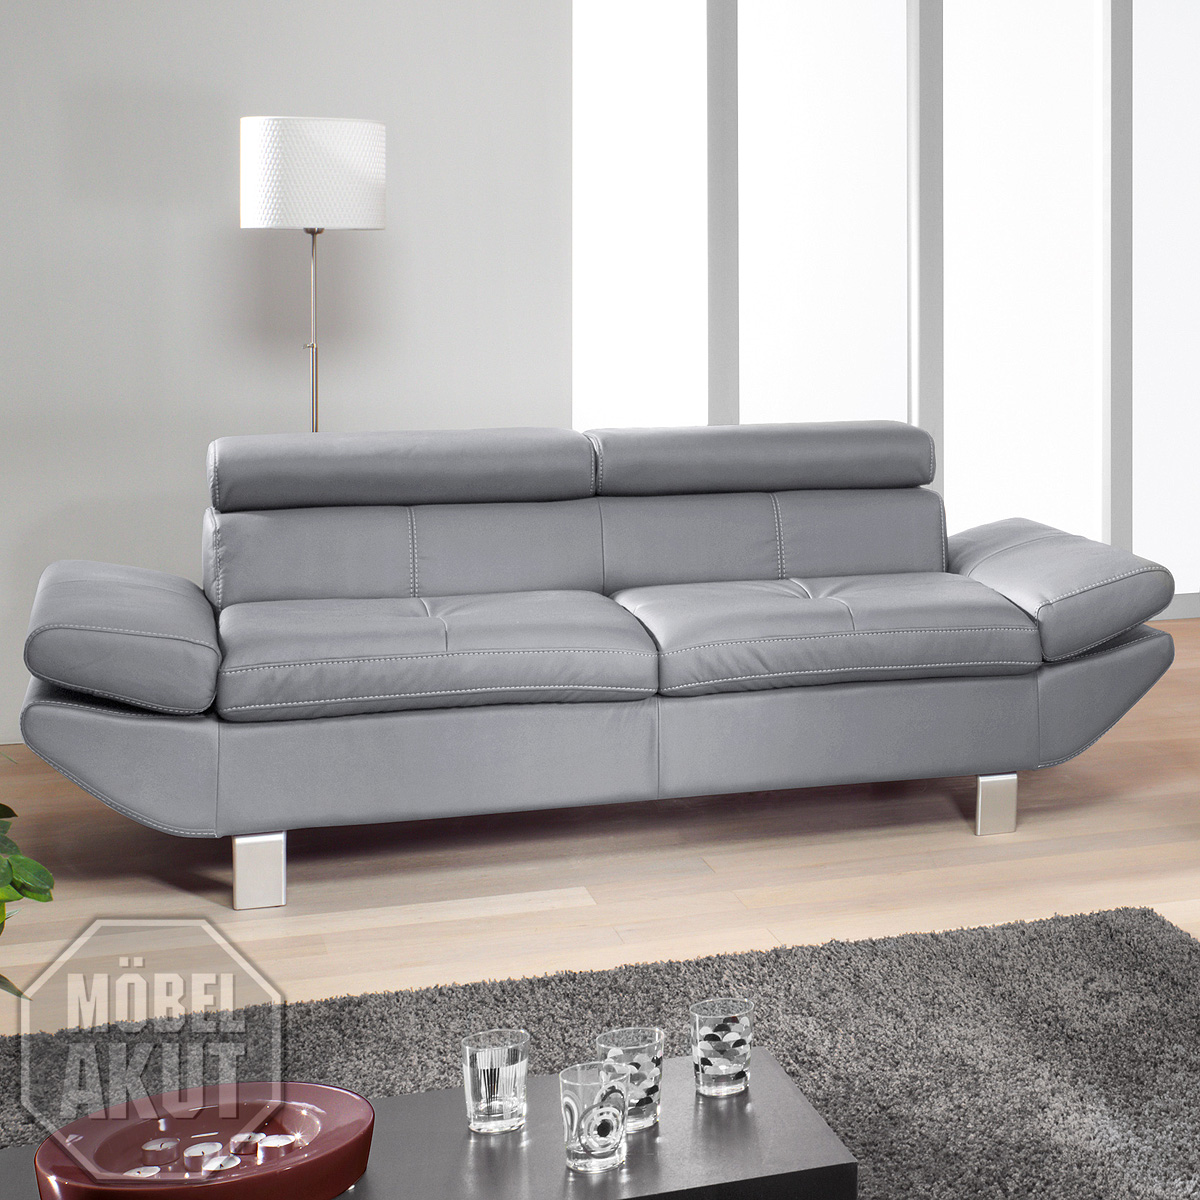 Big Sofa Mit Relaxfunktion 3er Sofa Carrier PolstermÖbel Mit Relaxfunktion In Grau